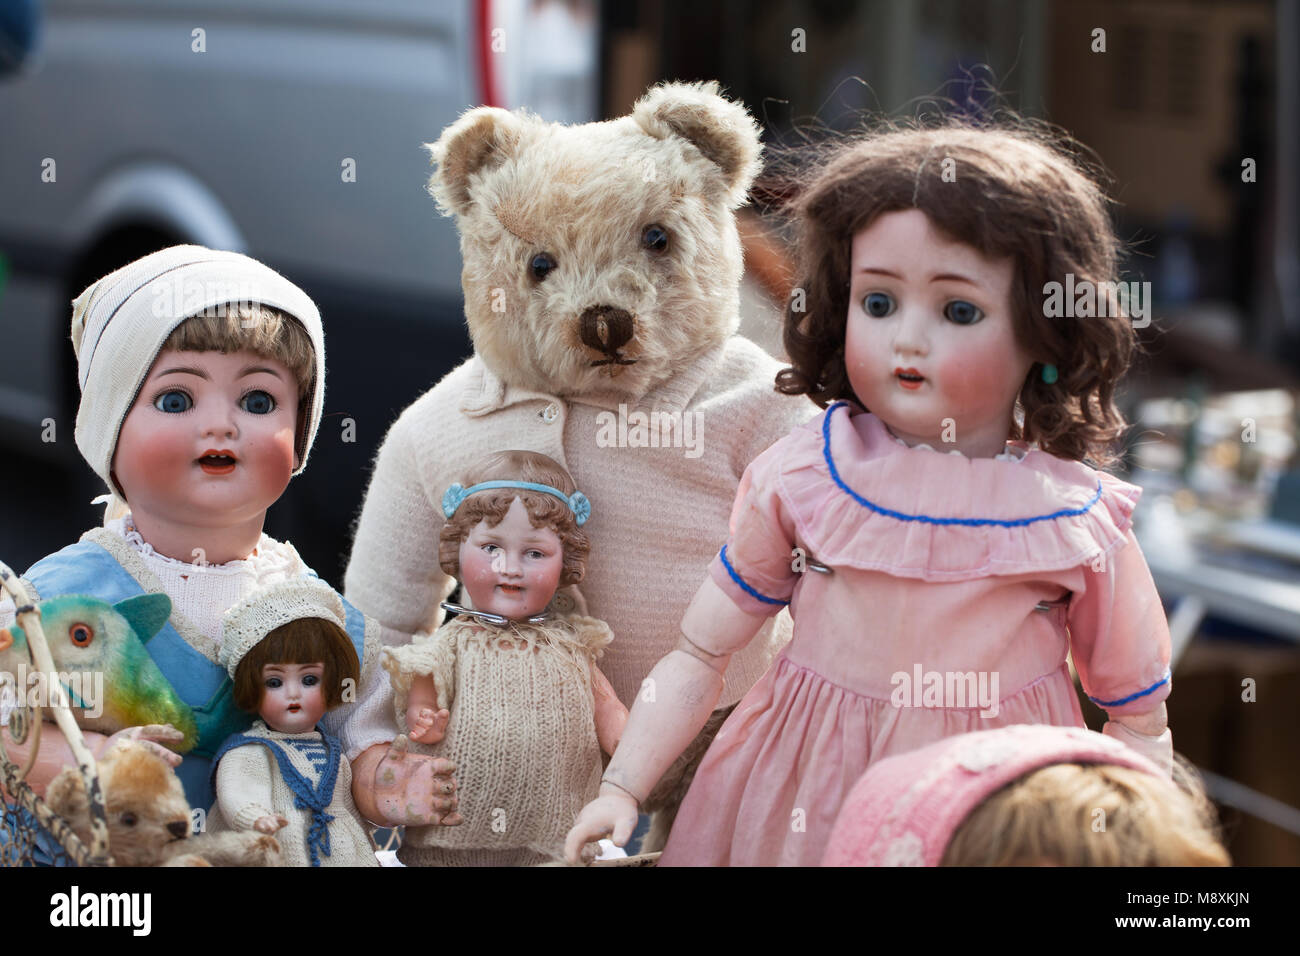 bunch of old dolls with teddy bear at a flea market - Stock Image